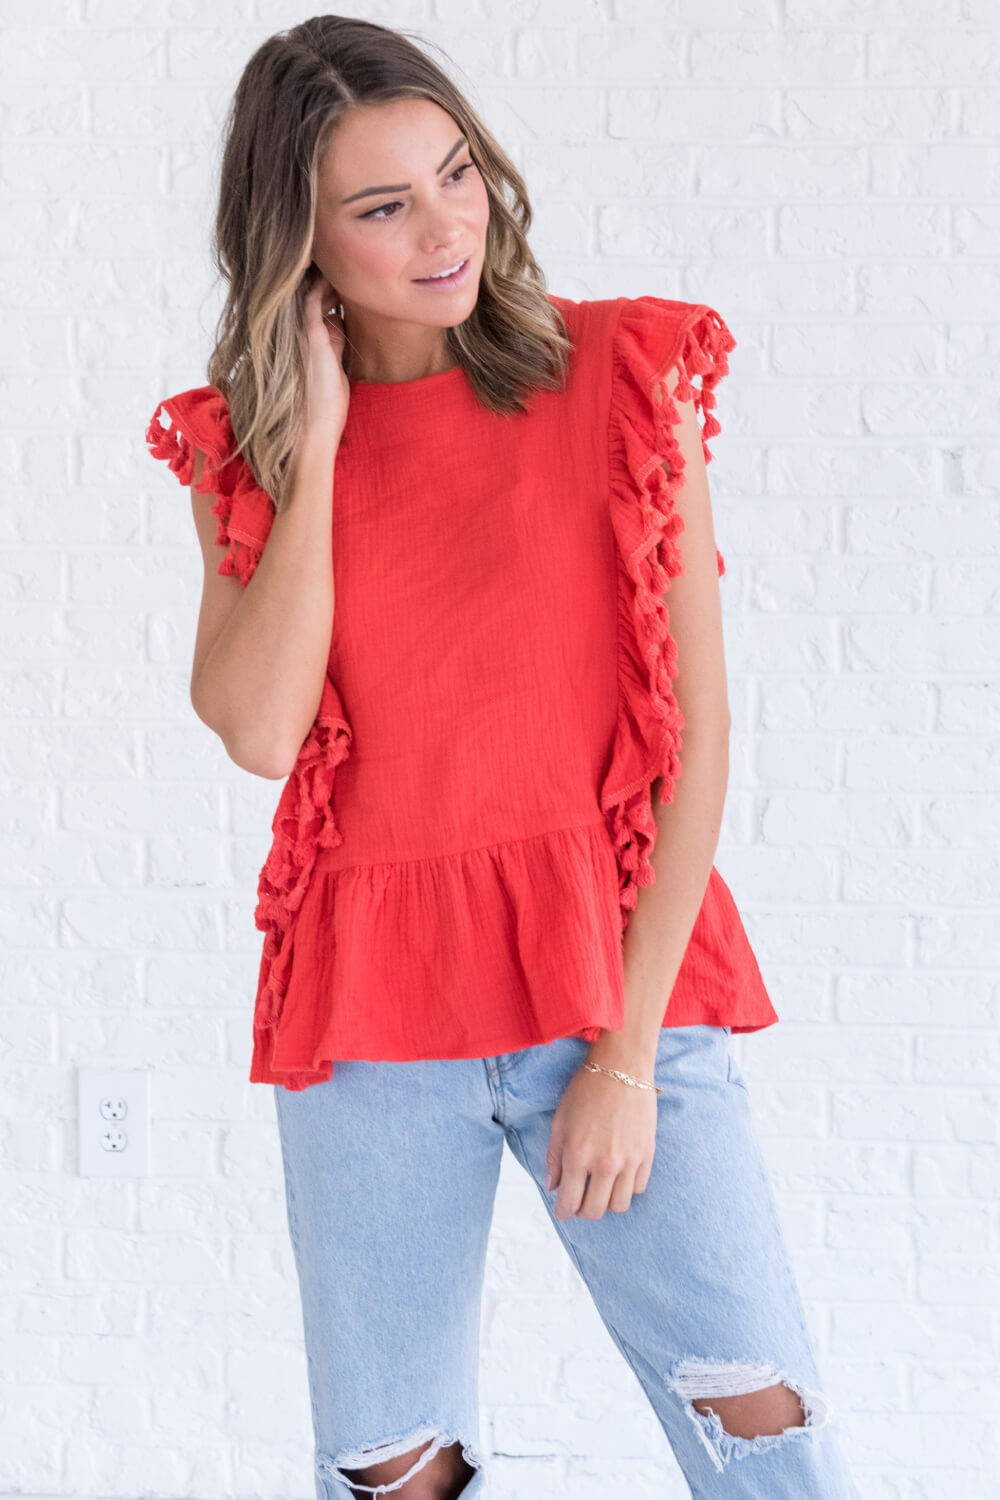 Summer Reading List 2018 bohemian red top